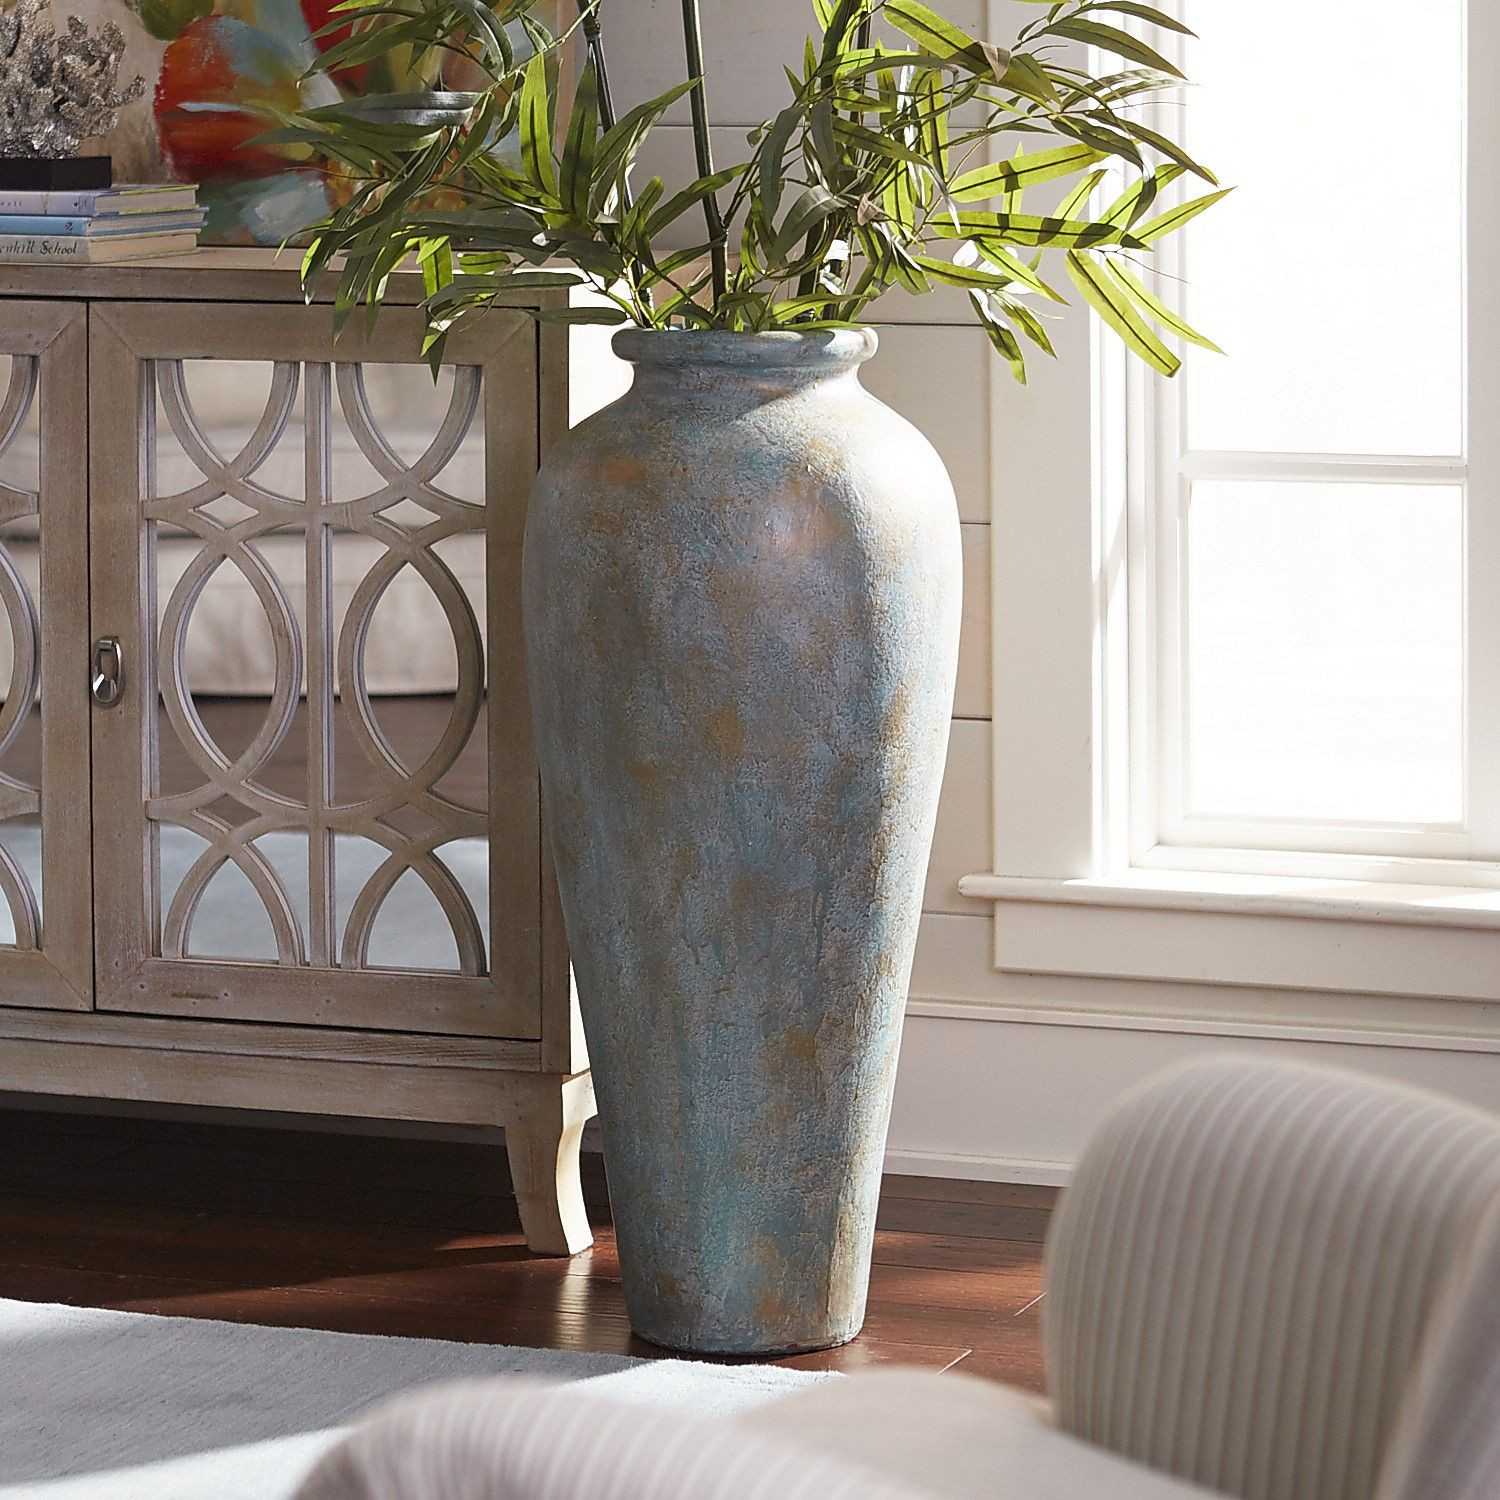 buy floor vases online of blue green patina urn floor vase products pinterest flooring with blue green patina urn floor vase